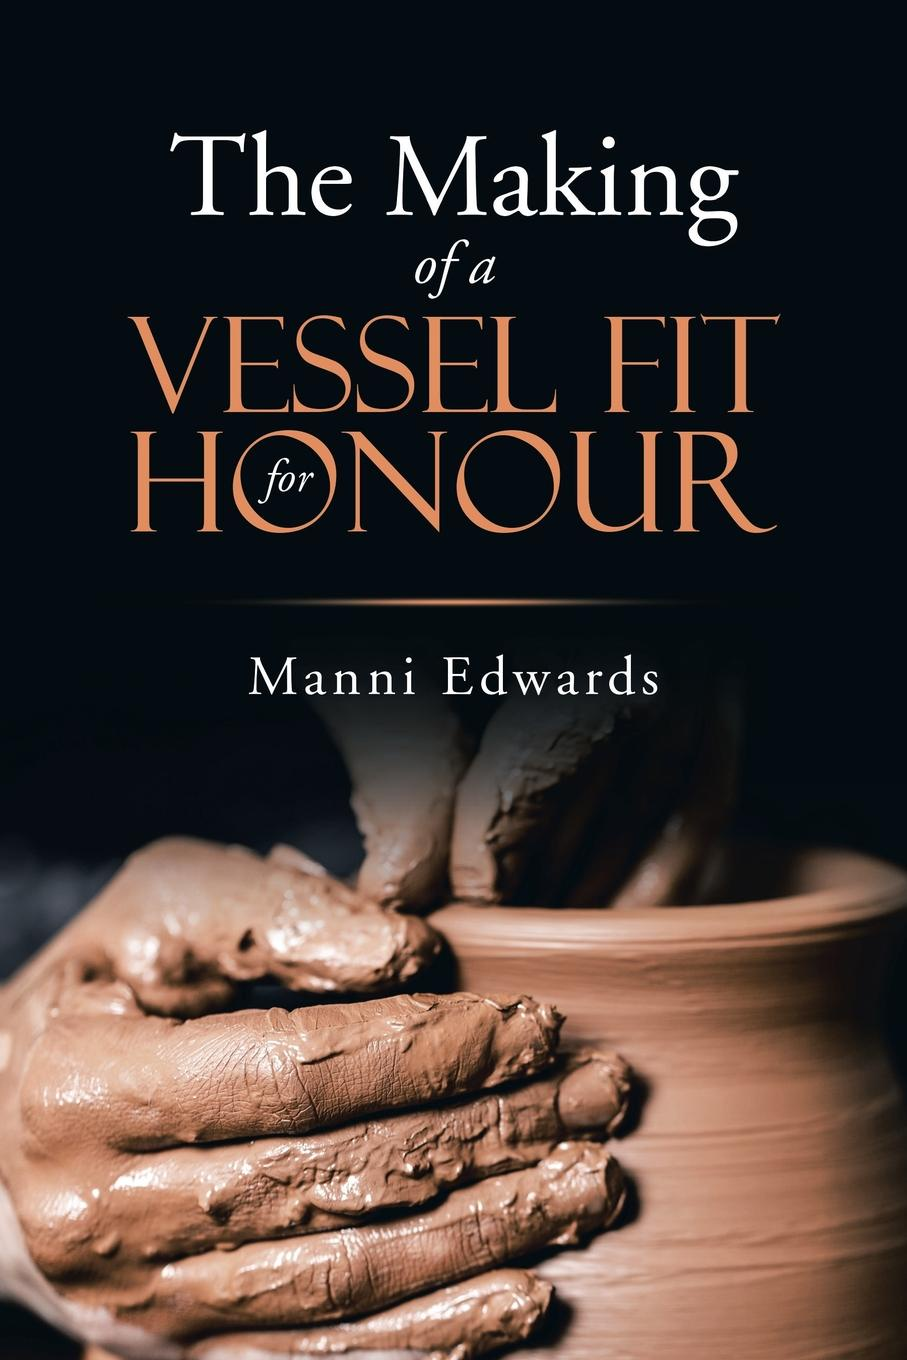 Manni Edwards The Making of a Vessel Fit for Honour banks george linnaeus the making of william edwards or the story of the bridge of beauty